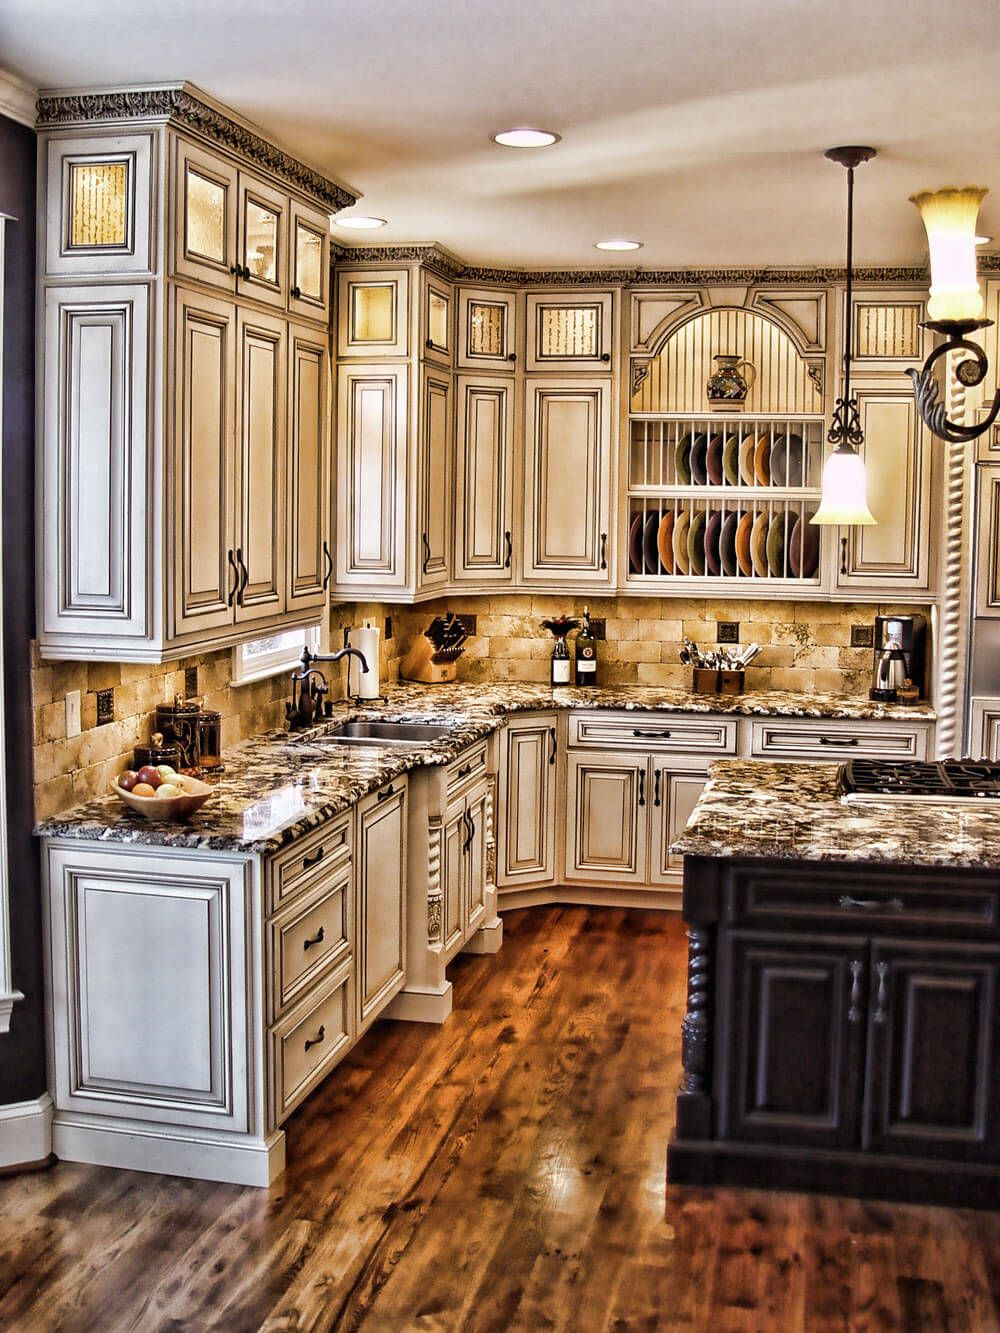 27 Cabinets For The Rustic Kitchen Of Your Dreams Antique White Kitchen Rustic Kitchen Cabinets Sweet Home